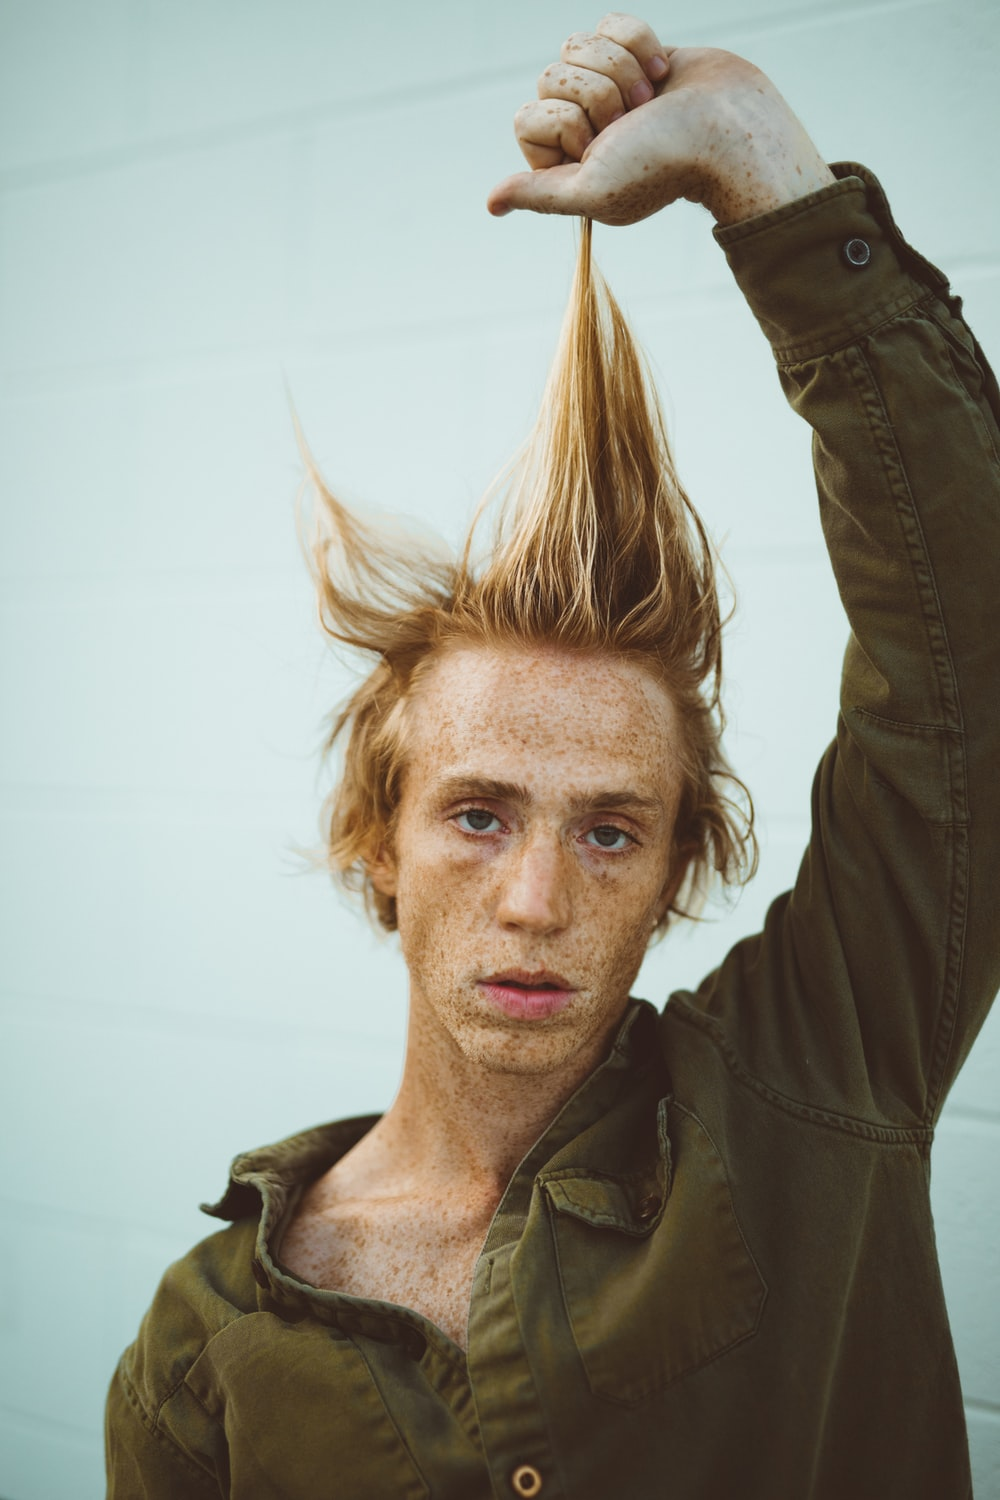 man pulling his hair up while standing near wall